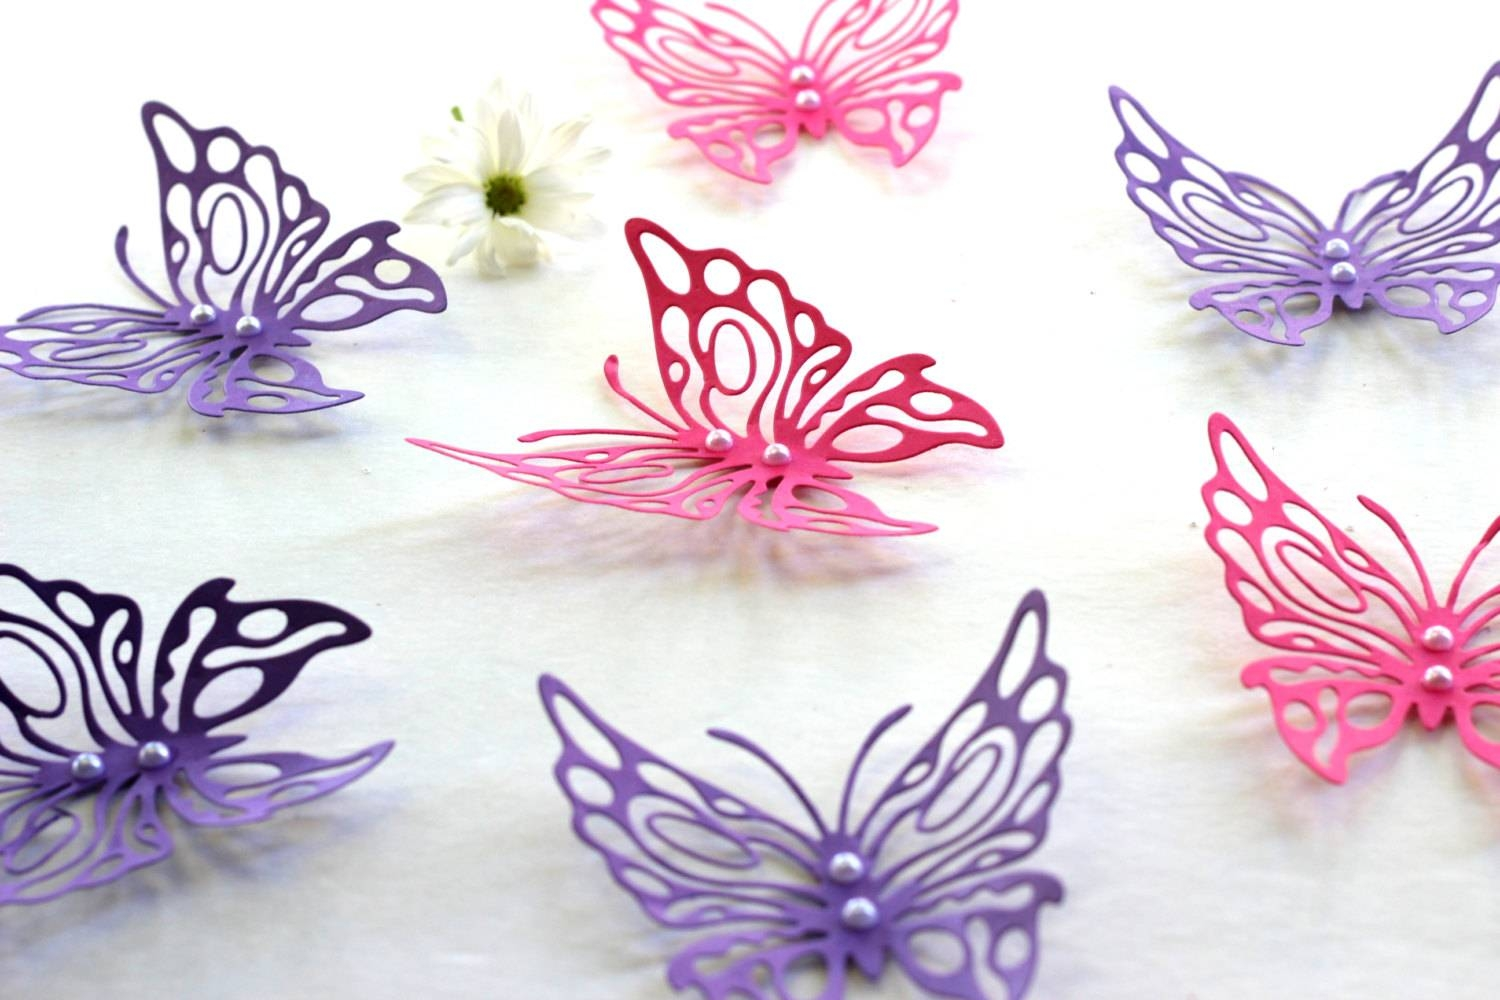 Decor : 45 Butterfly Wall Decor Patterns 3D Butterfly Wall Art Throughout 2018 Pink Butterfly Wall Art (View 8 of 20)